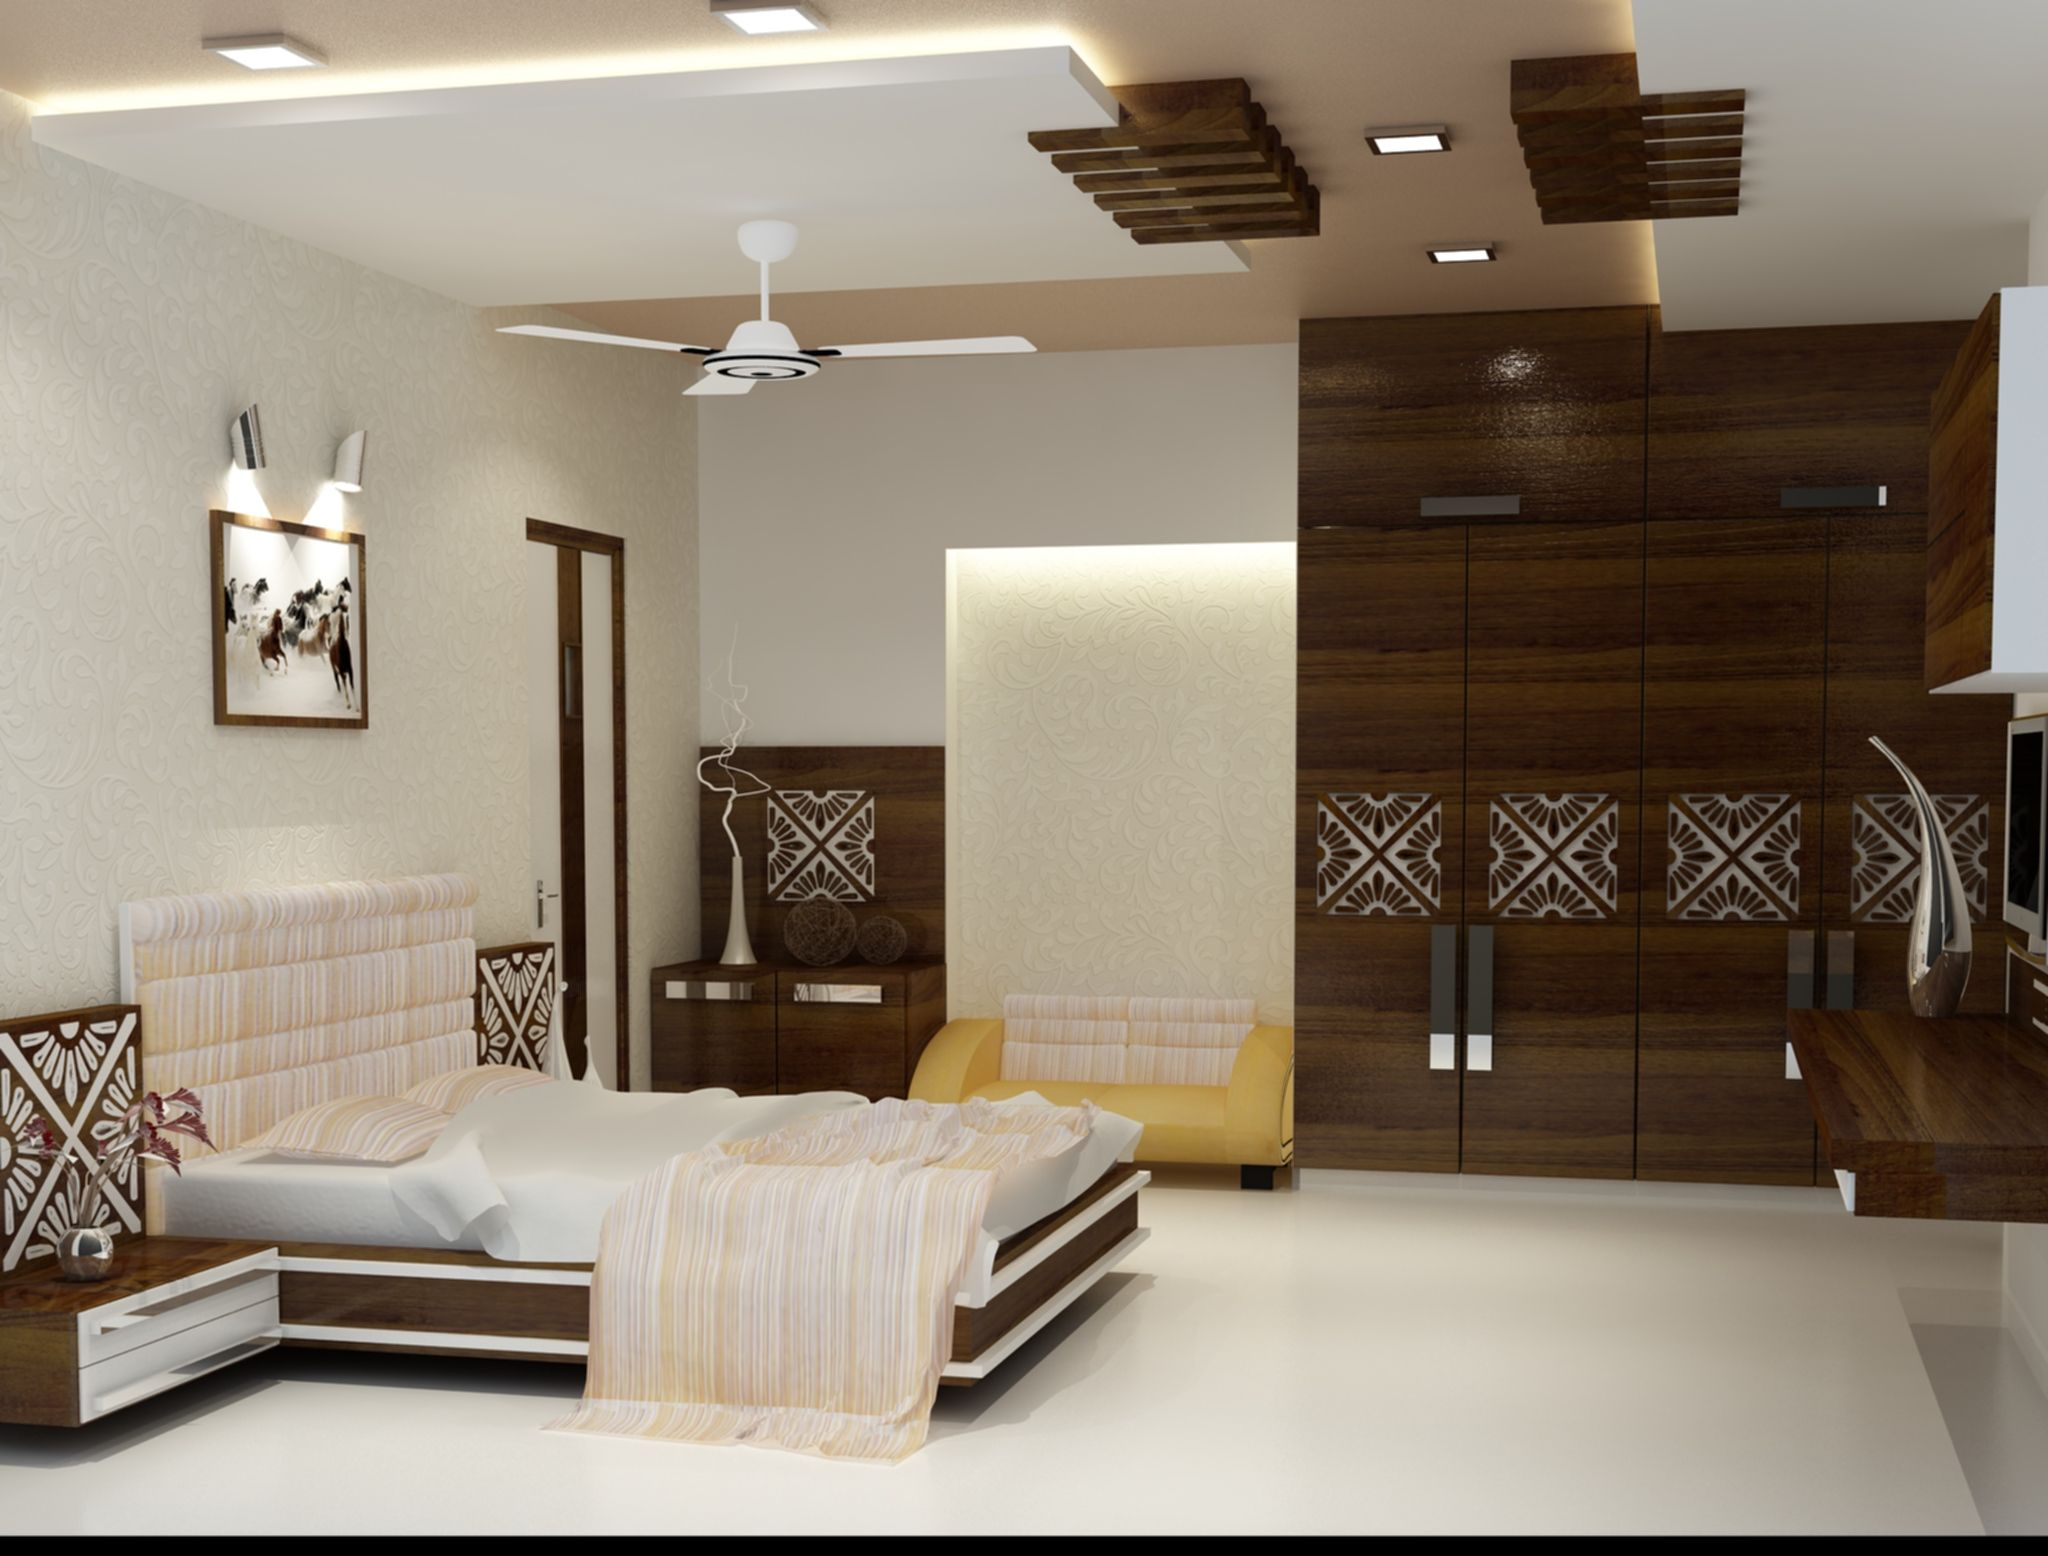 Design For Indian Interiors Google Search Bed Room Bedroom